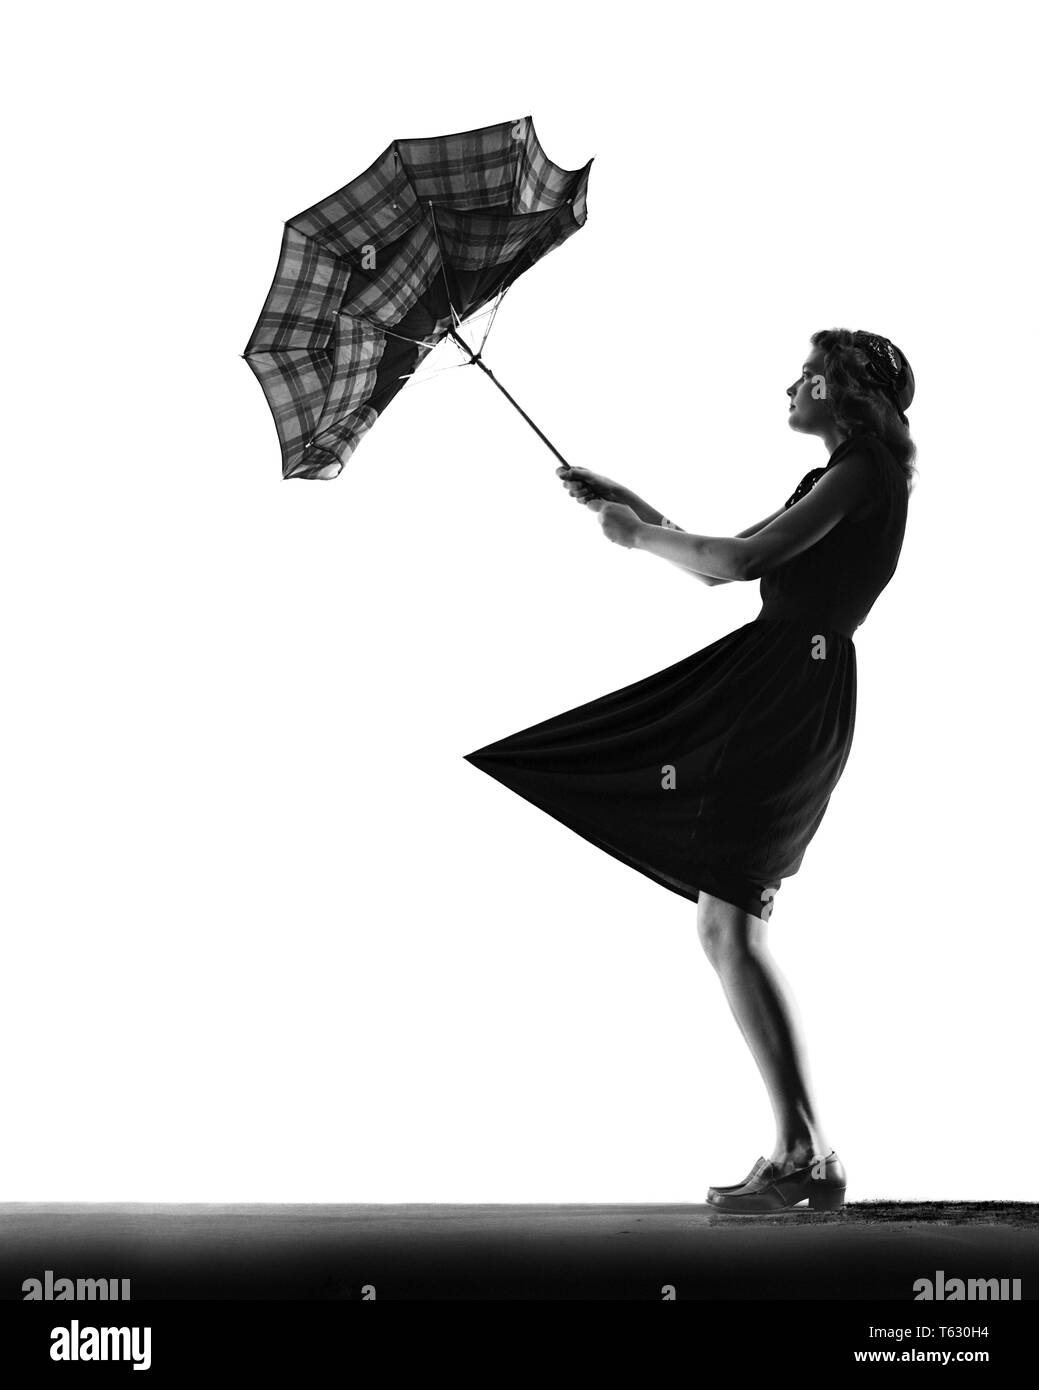 1930s 1940s ANONYMOUS SILHOUETTE OF TEENAGE  GIRL WITH UMBRELLA TURNED INSIDE OUT IN THE WIND - s1702 HAR001 HARS BALANCE TROUBLE LIFESTYLE FEMALES STUDIO SHOT NATURE COPY SPACE FULL-LENGTH RAINY PERSONS CUTOUT RISK TEENAGE GIRL SILHOUETTES STORMY B&W OUTLINE SADNESS SILHOUETTED EXCITEMENT TURNED LITTLE GIRL CONCEPTUAL STYLISH TEENAGED WINDY CLOCHE HAT ANONYMOUS BAD WEATHER GUSTY INSIDE OUT JUVENILES YOUNG ADULT WOMAN BLACK AND WHITE HAR001 OLD FASHIONED - Stock Image